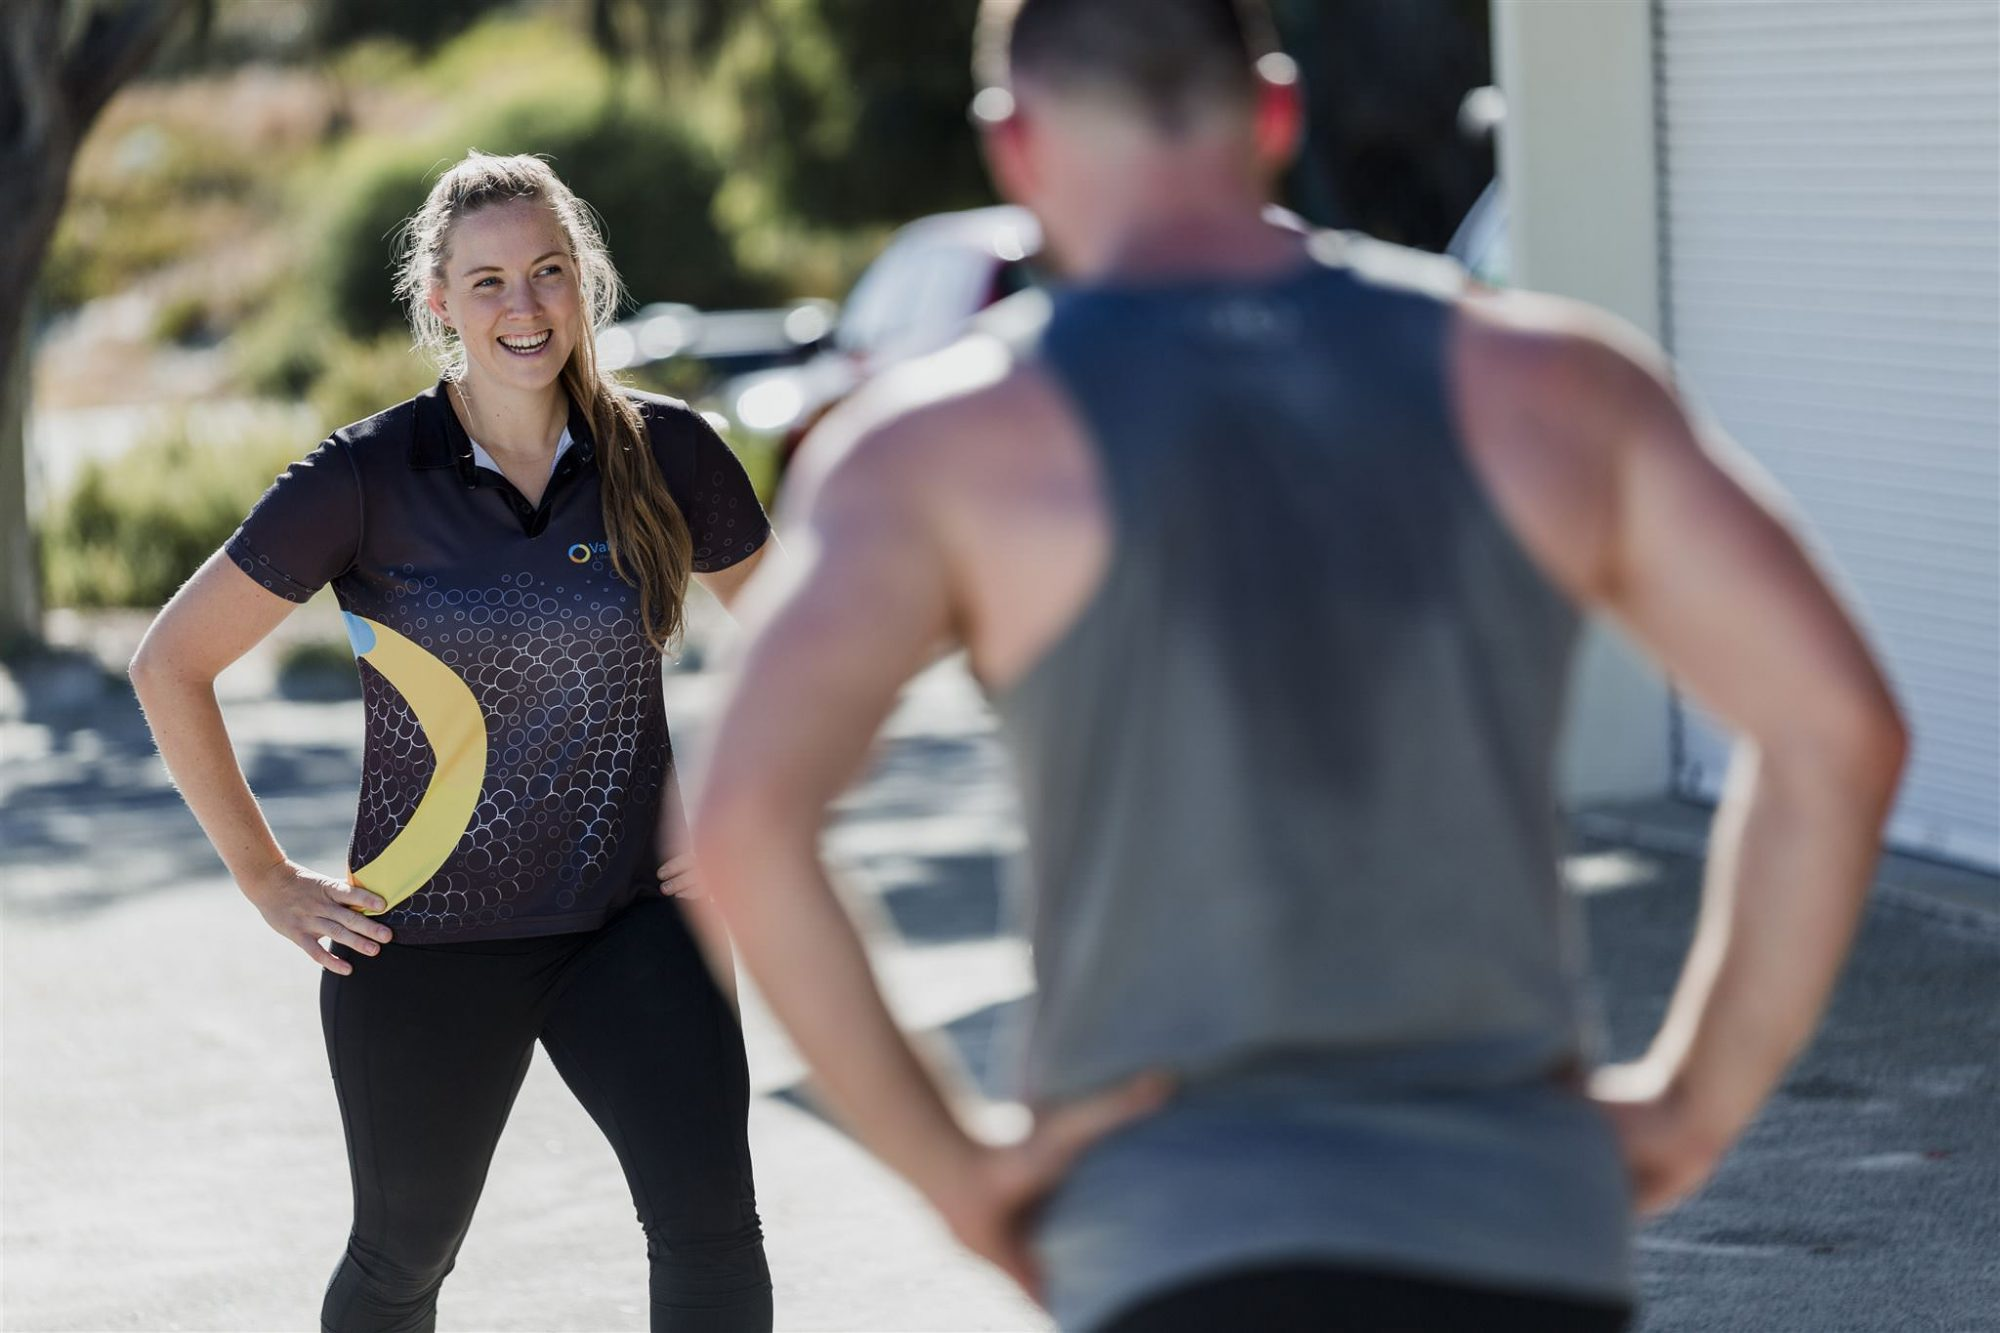 Perth health and fitness business branding photography for exercise physiologists Valetudo Health by commercial photographer Dennis Tan Creative